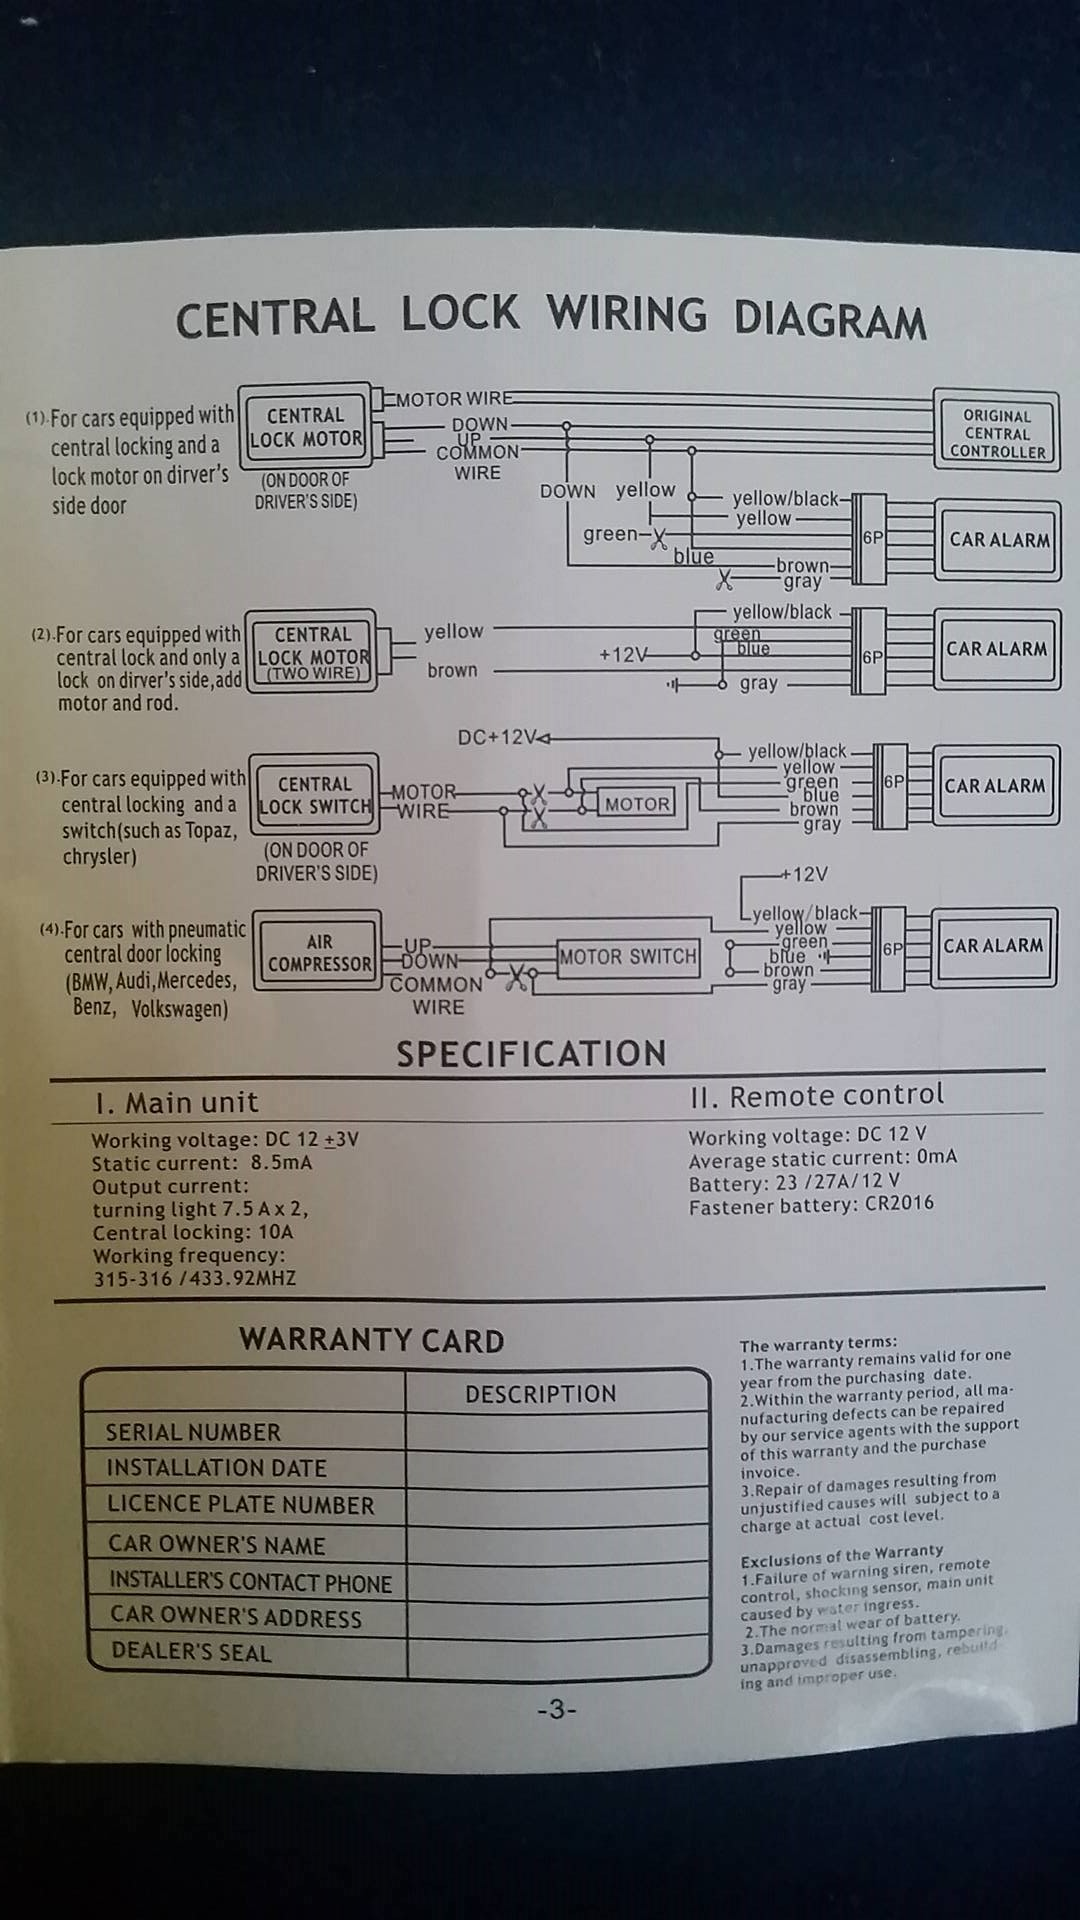 e36 door lock wiring diagram rj45 crossover cable bmw central locking